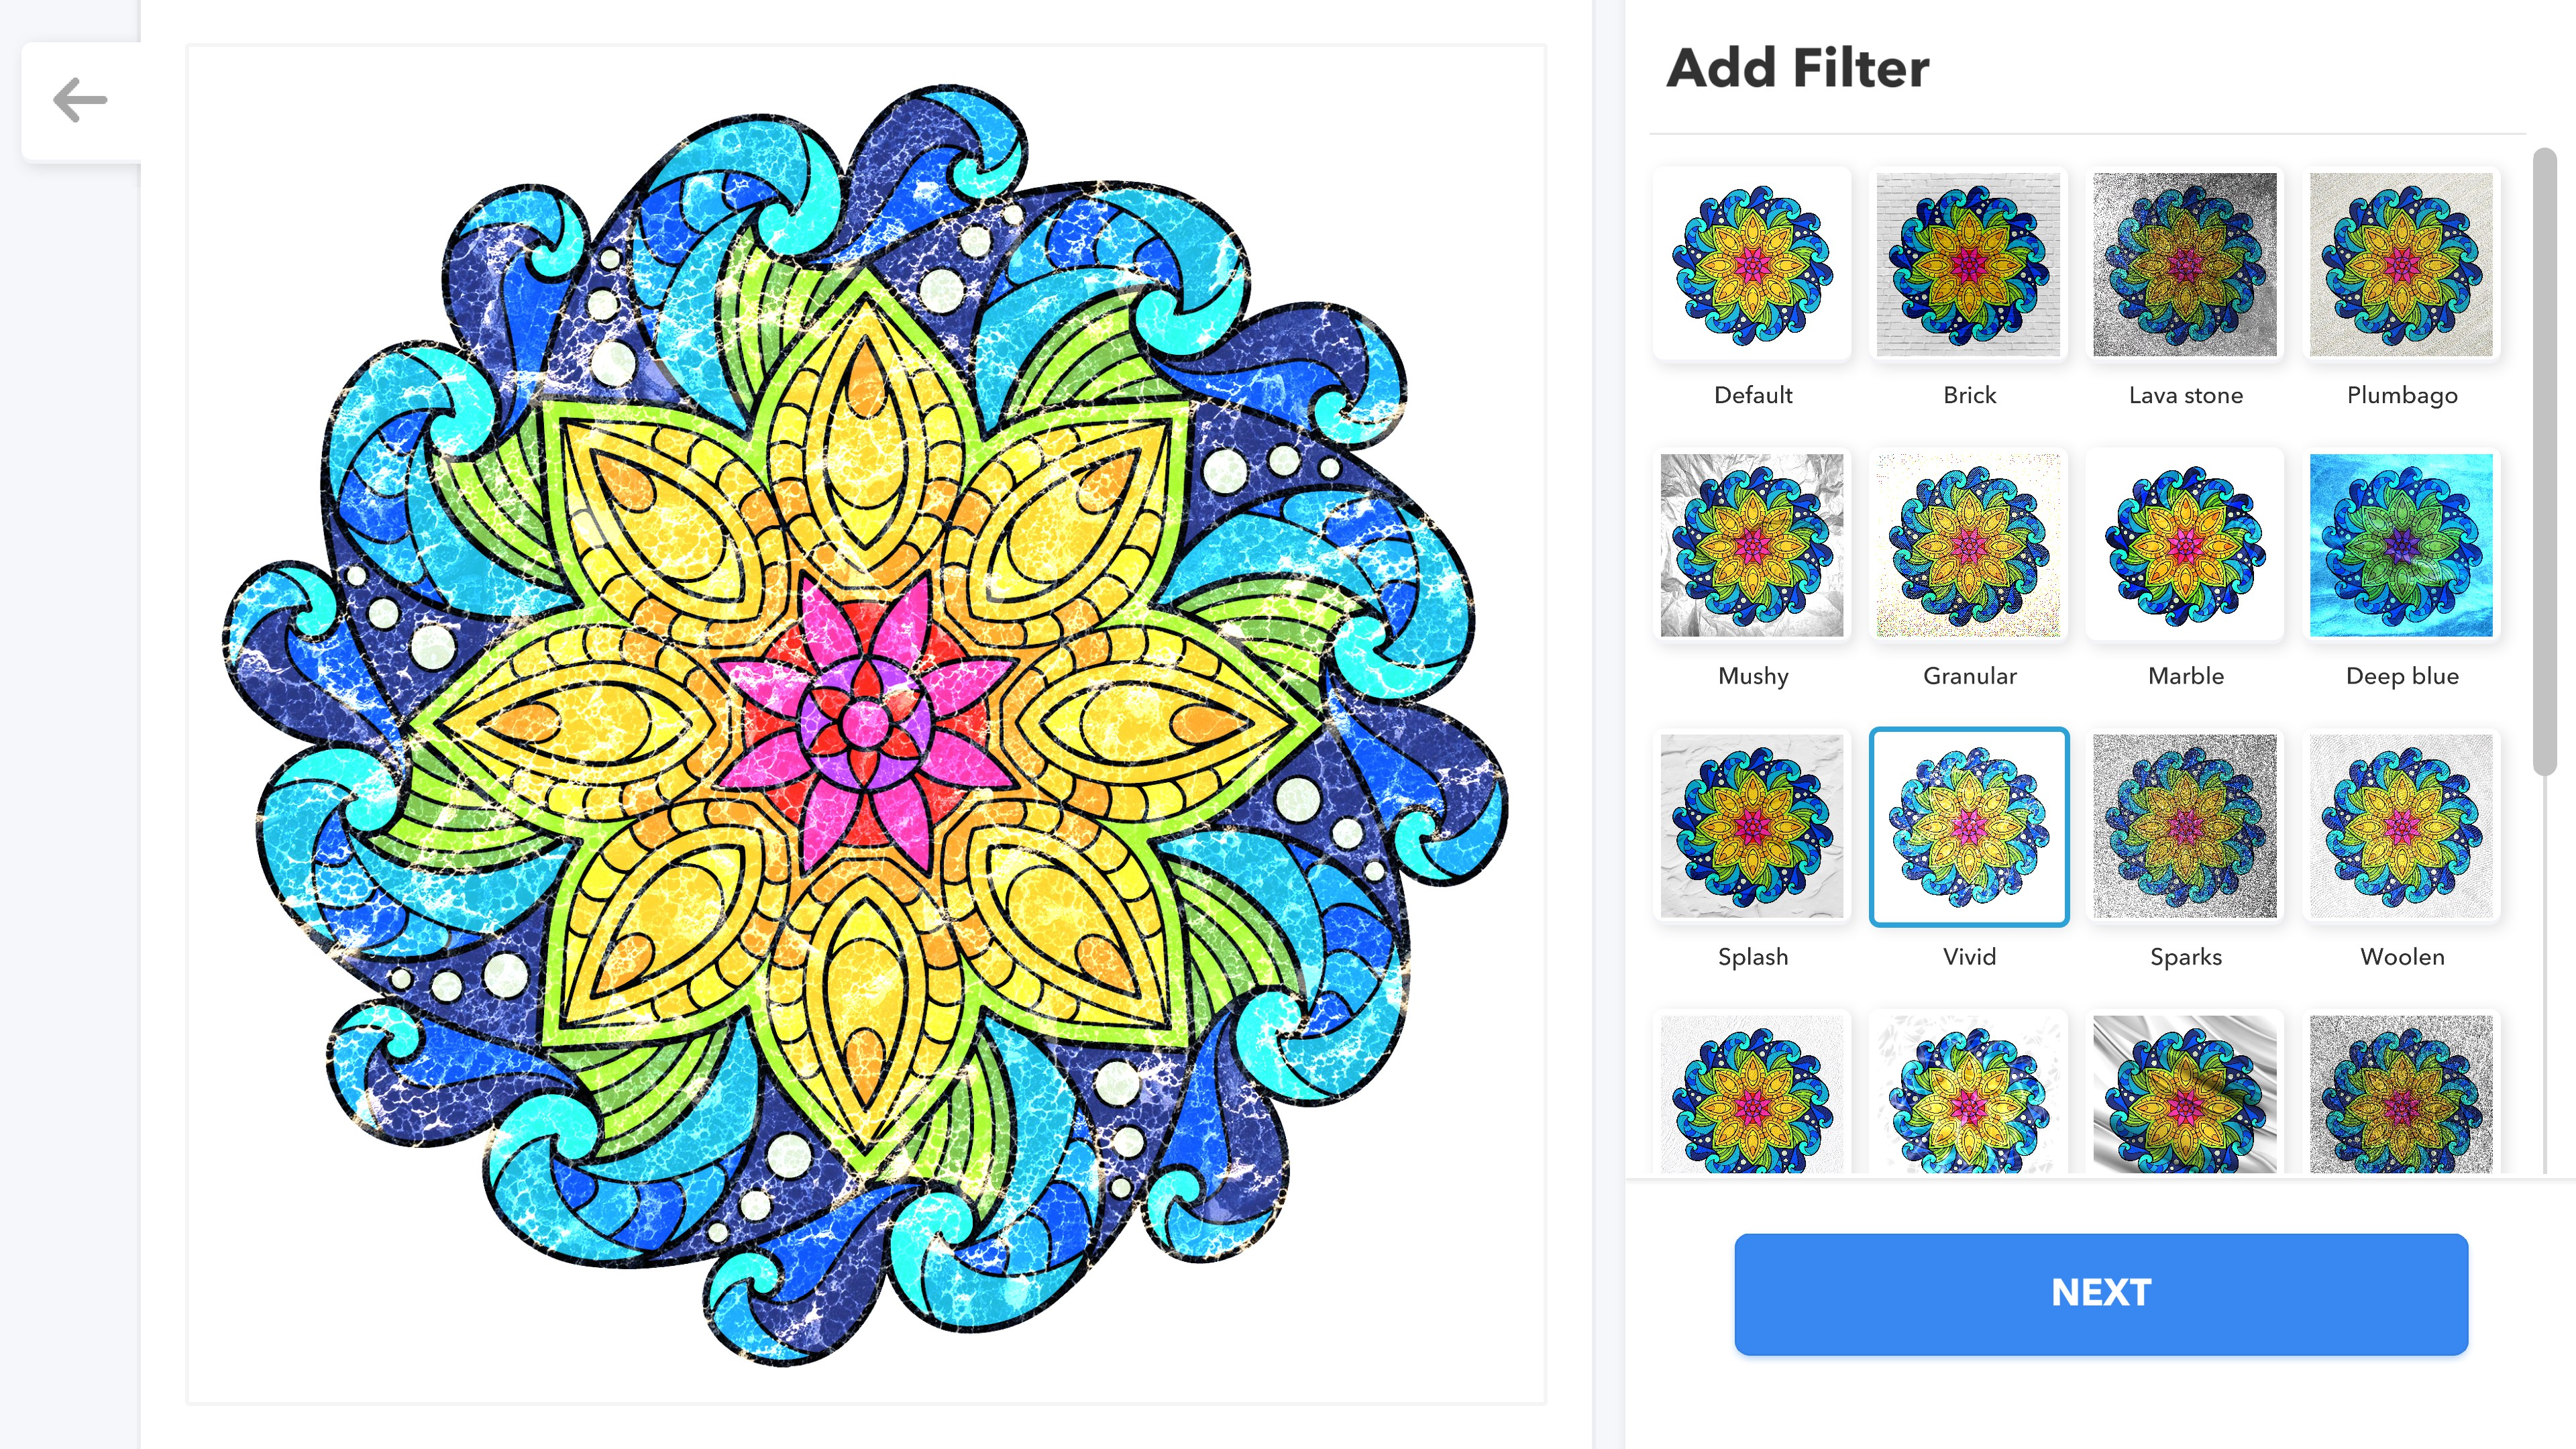 Coloring Book for Adults. Filter options to add to a completed rainbow mandala. The current option is Vivid which produces an oil-on-water effect. 16 options are visible plus a scroll bar to reach more.